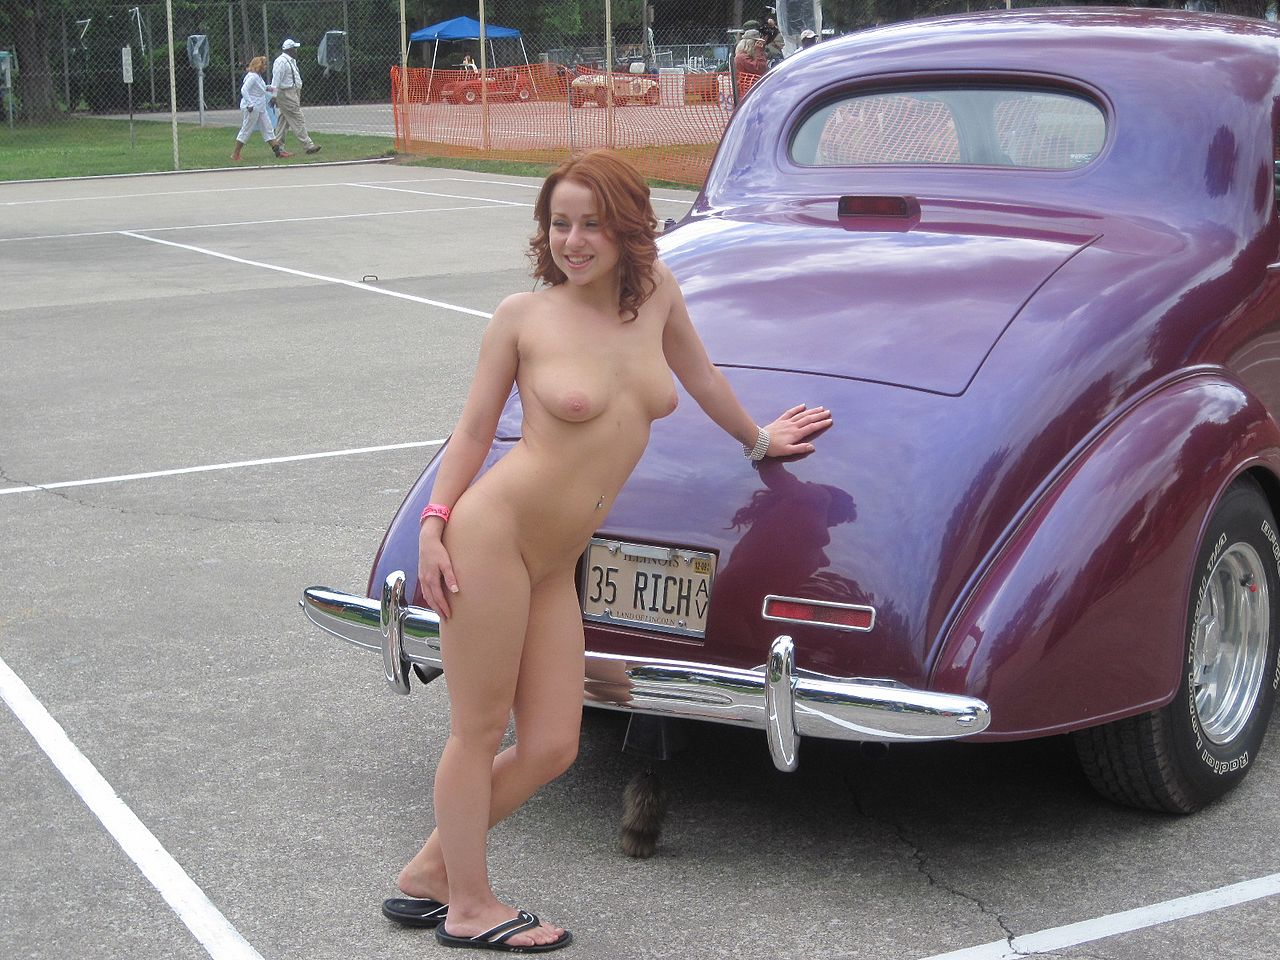 Car And Nacked Woman 9